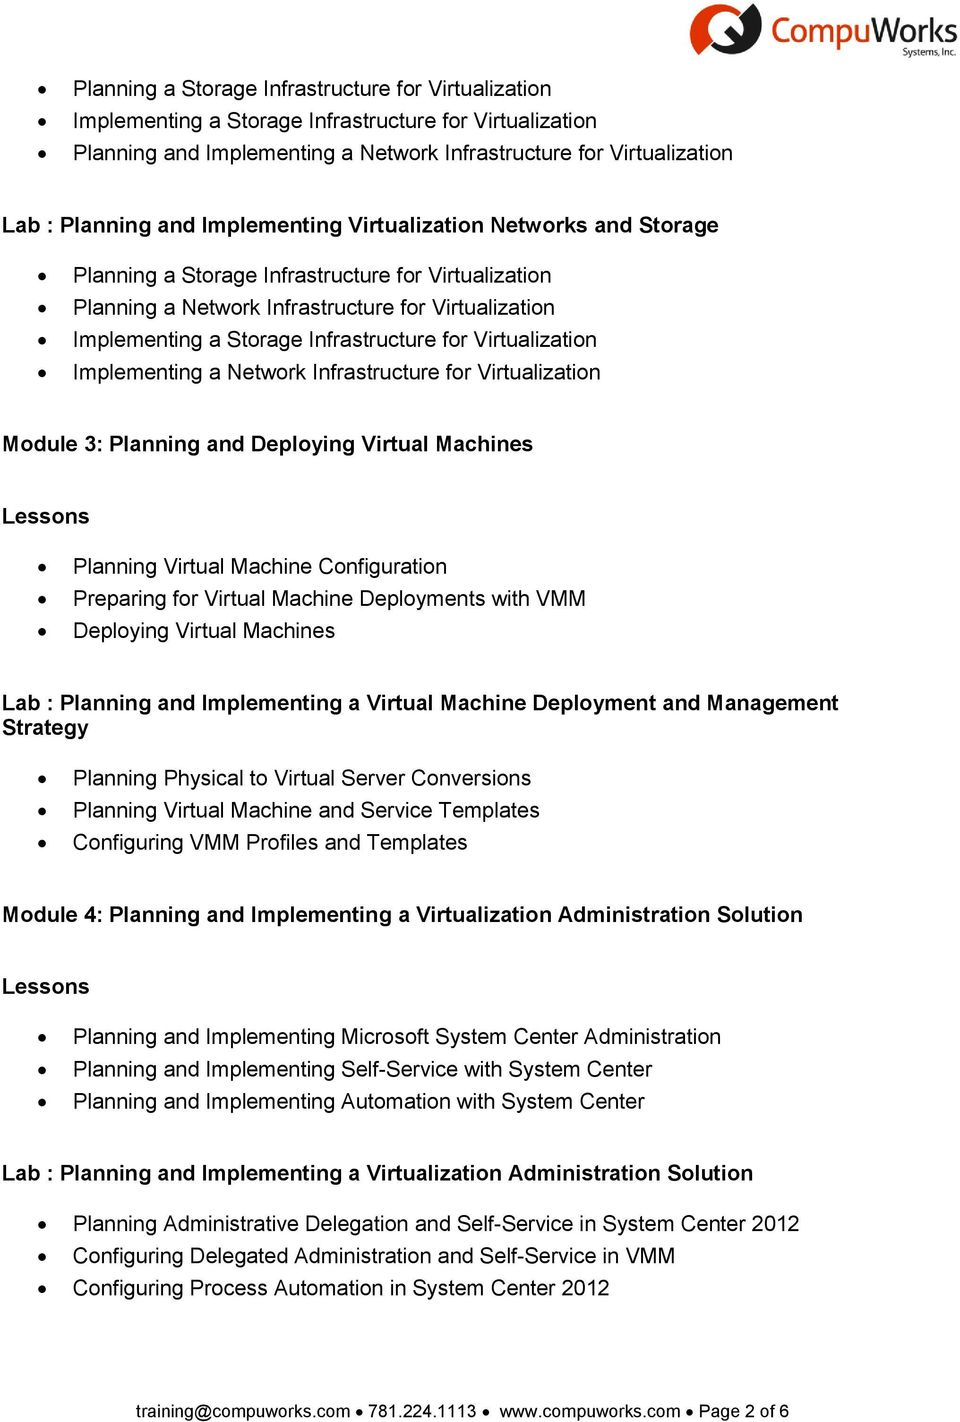 Virtualization Implementing a Network Infrastructure for Virtualization Module 3: Planning and Deploying Virtual Machines Planning Virtual Machine Configuration Preparing for Virtual Machine